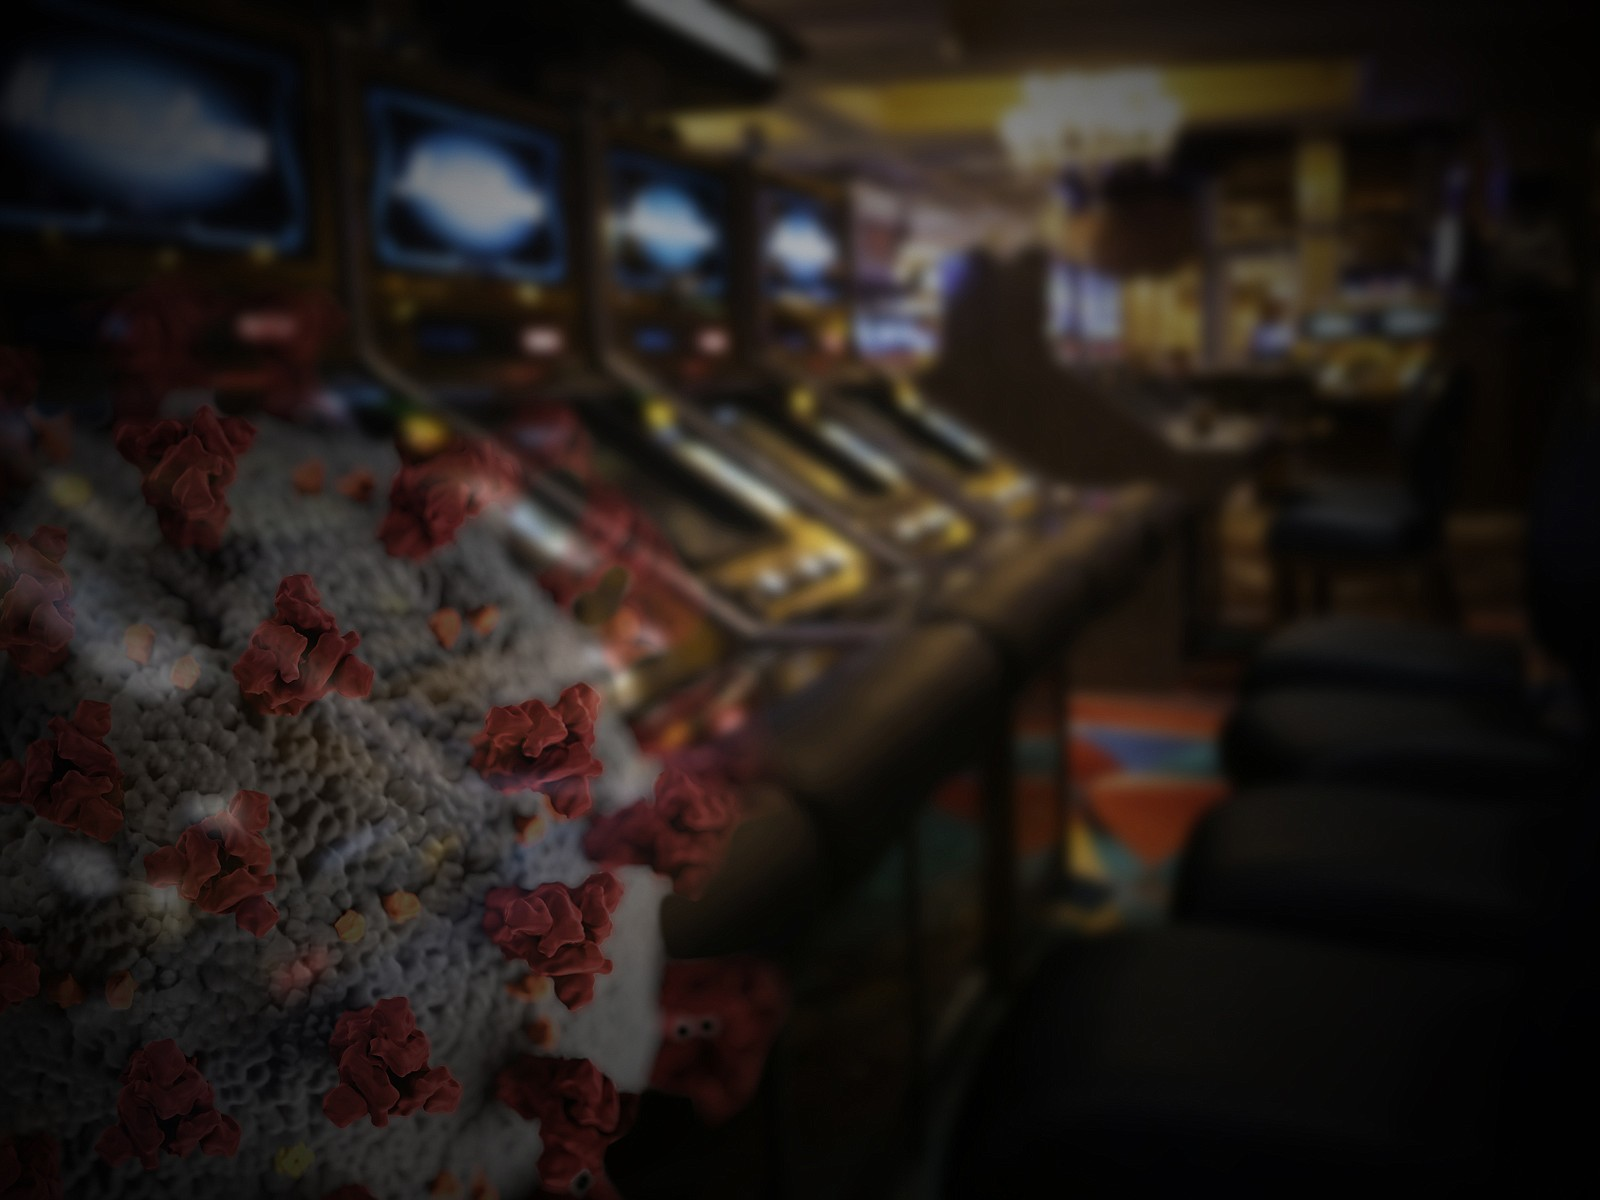 A row of casino slot machines are pictured in this undated graphic.